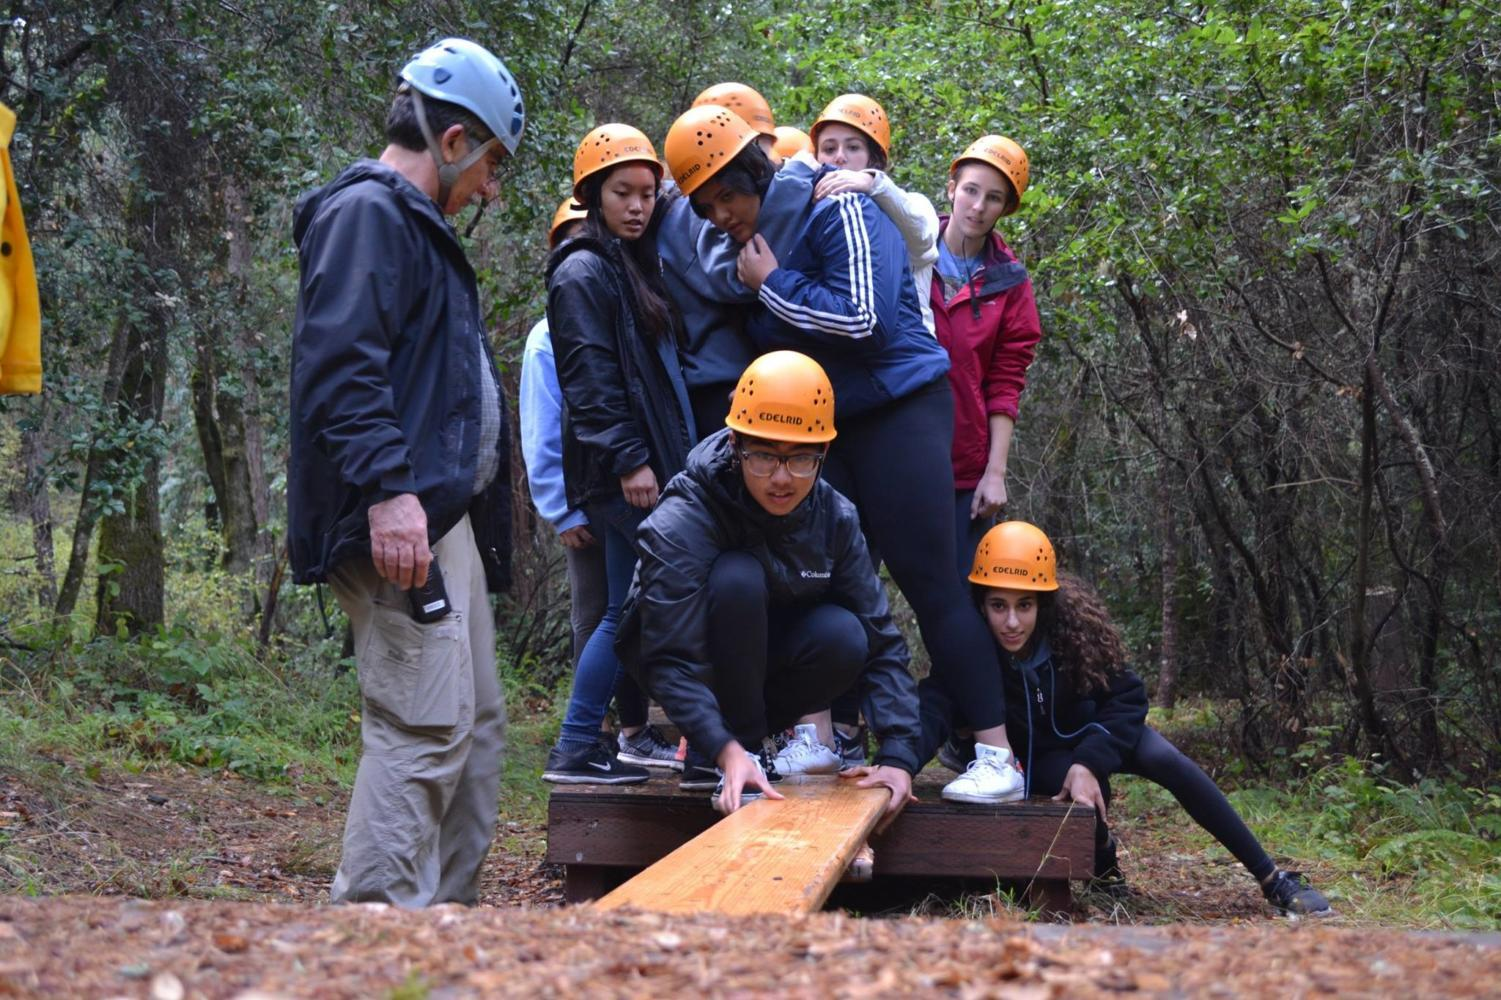 The members of ASB's service council work together to complete one of the difficult low courses.